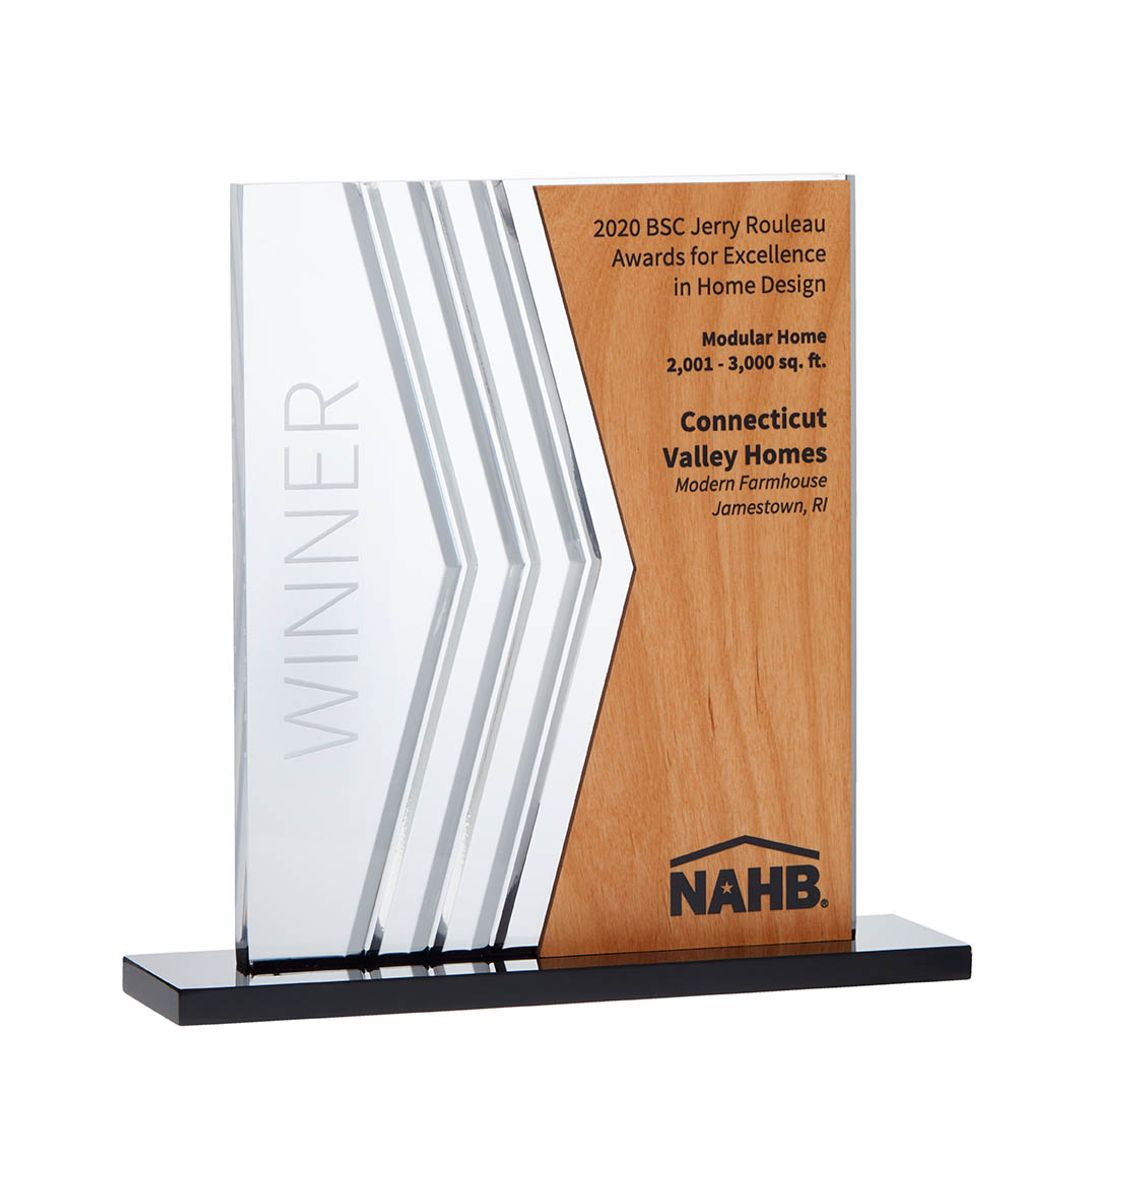 National Association of Home Builders Building Systems Council Jerry Rouleau Award for Excellence in Home Design